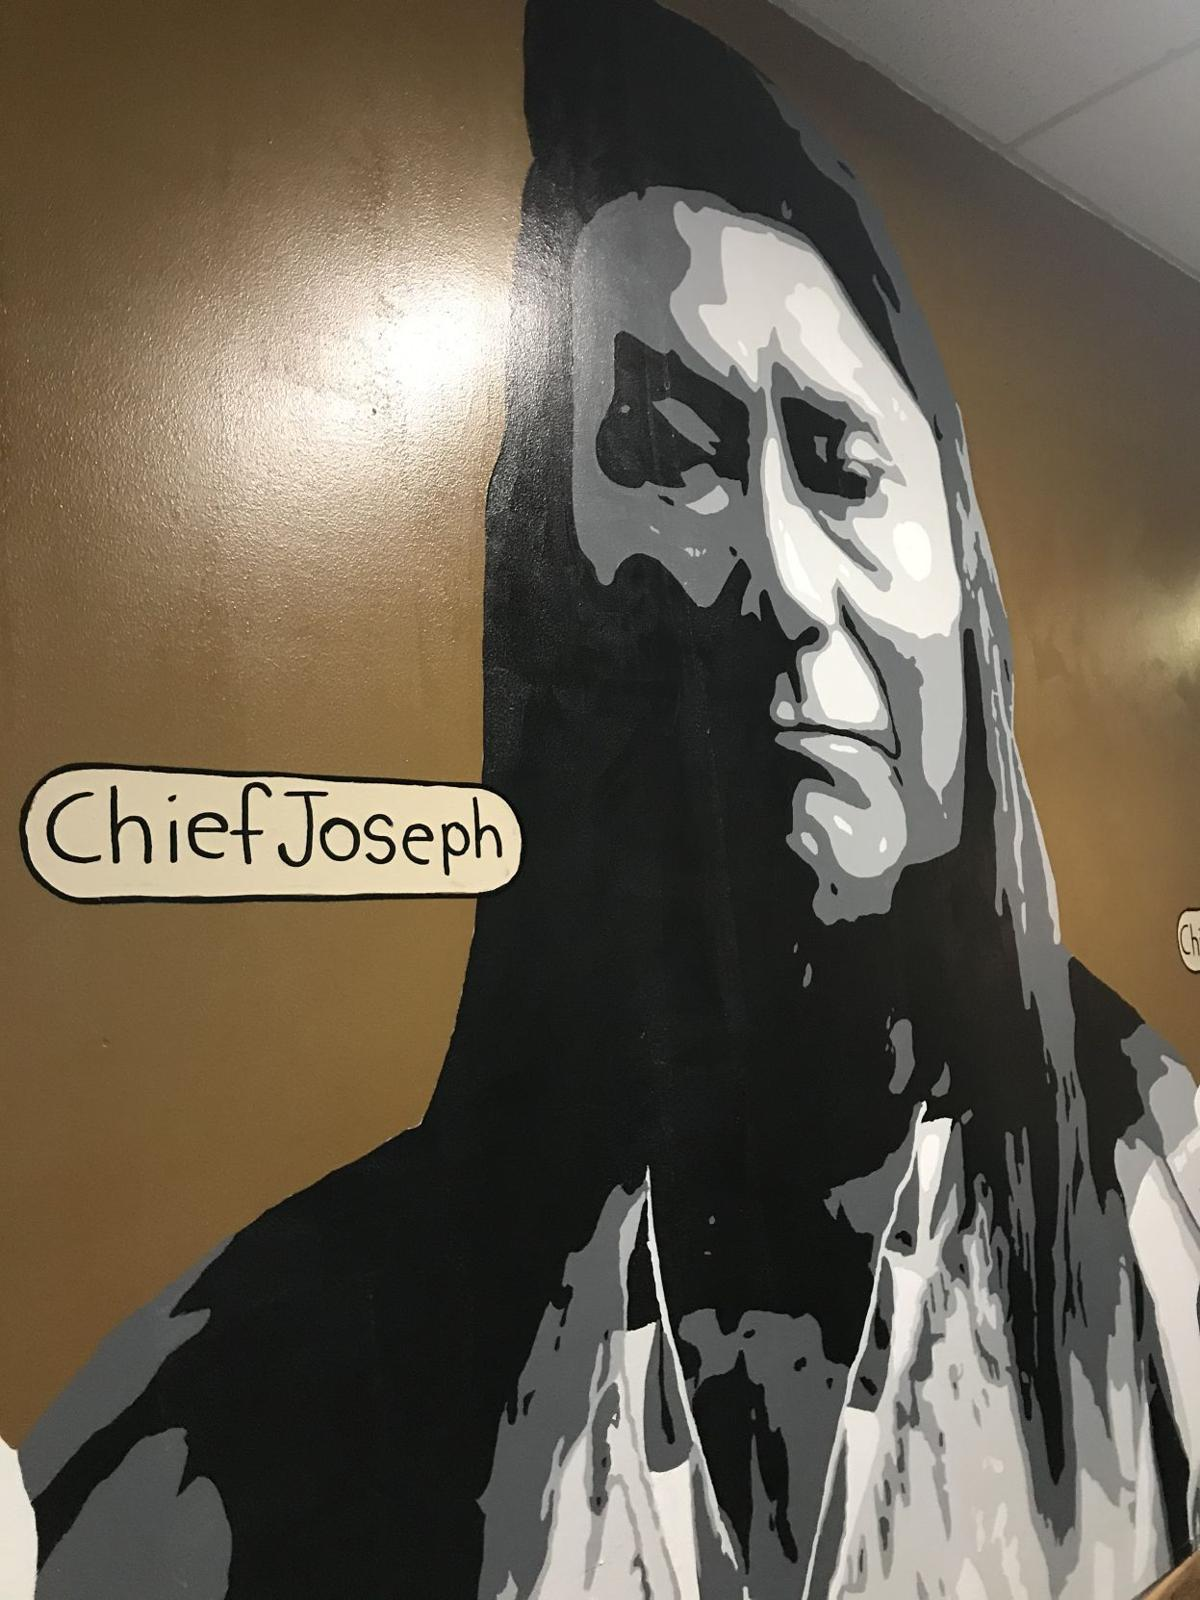 GEMS mural of Chief Joseph